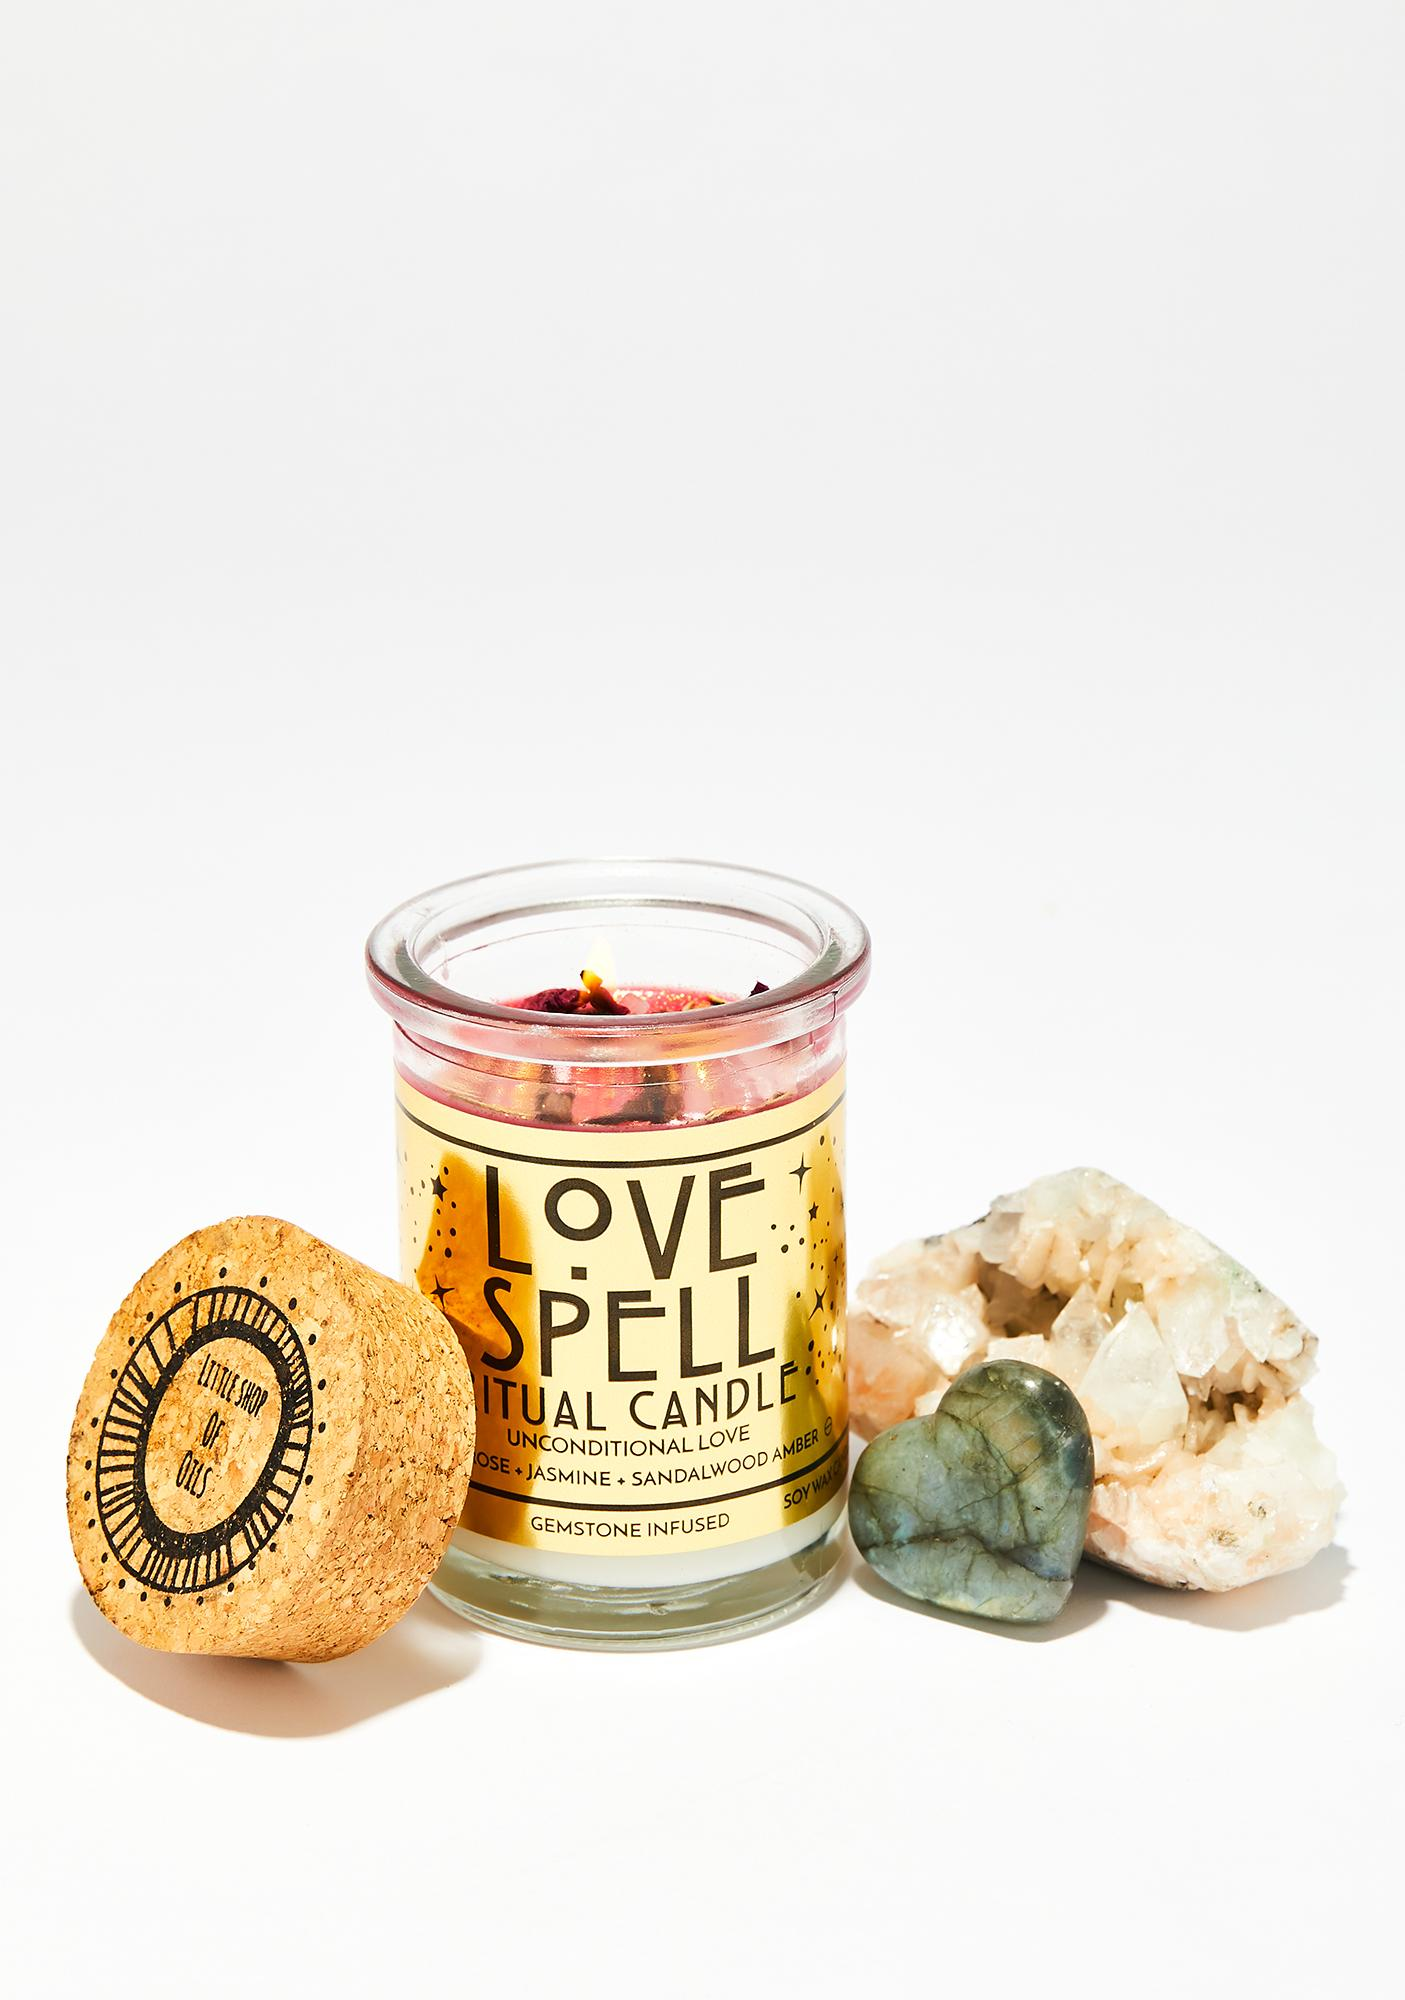 Little Shop of Oils Love Ritual Candle